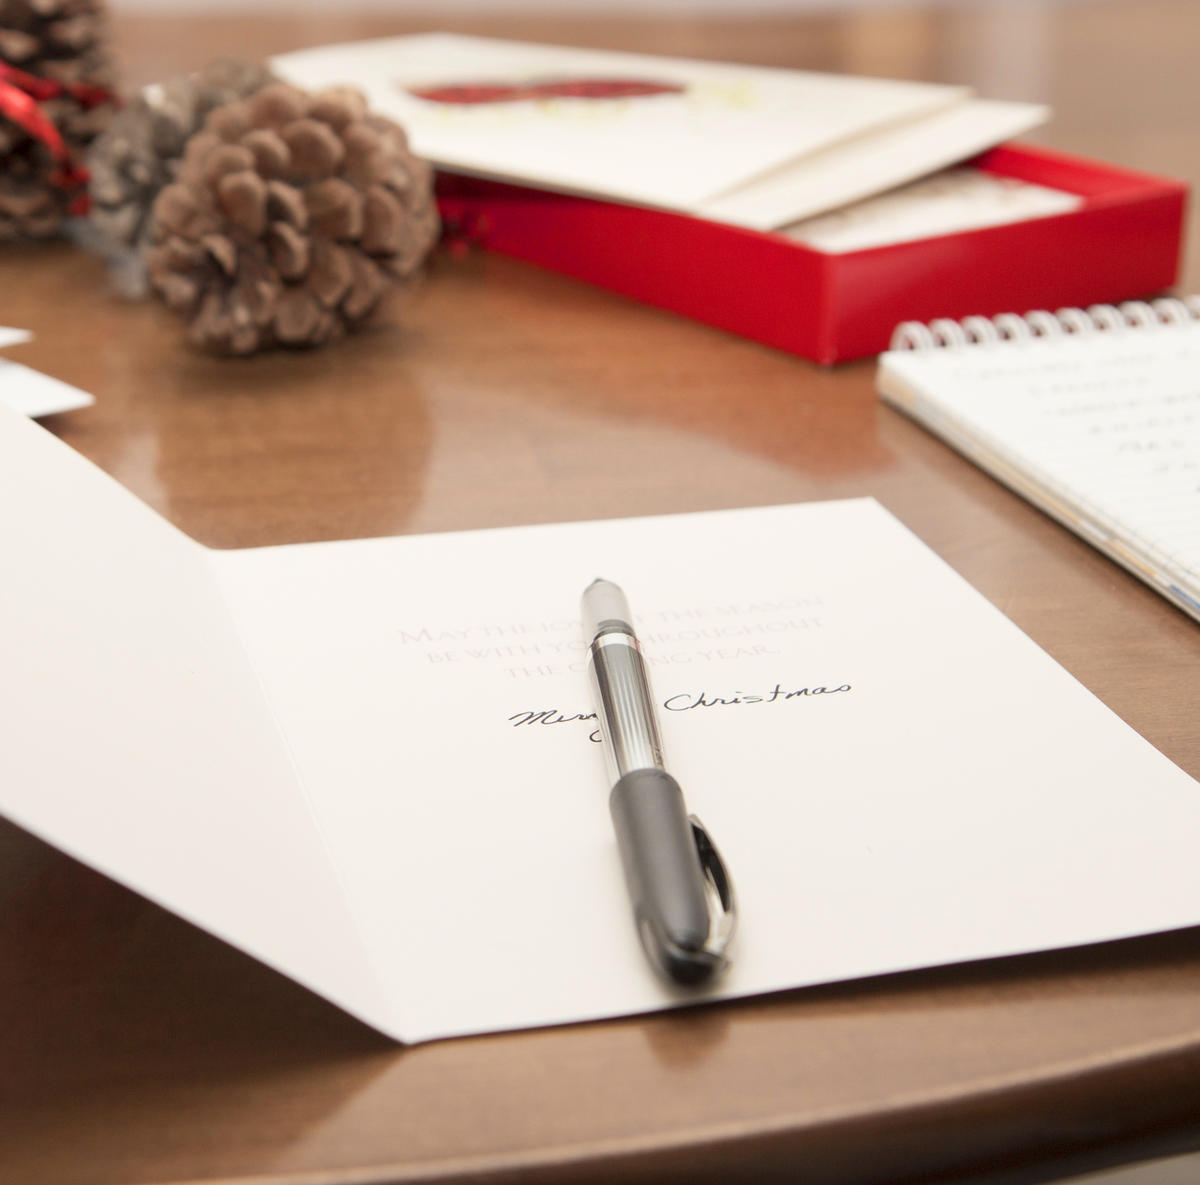 Every year, Amy Choate-Nielsen reflects on what she would write if she mailed a Christmas card to her friends and family. Maybe next year, she'll follow through.